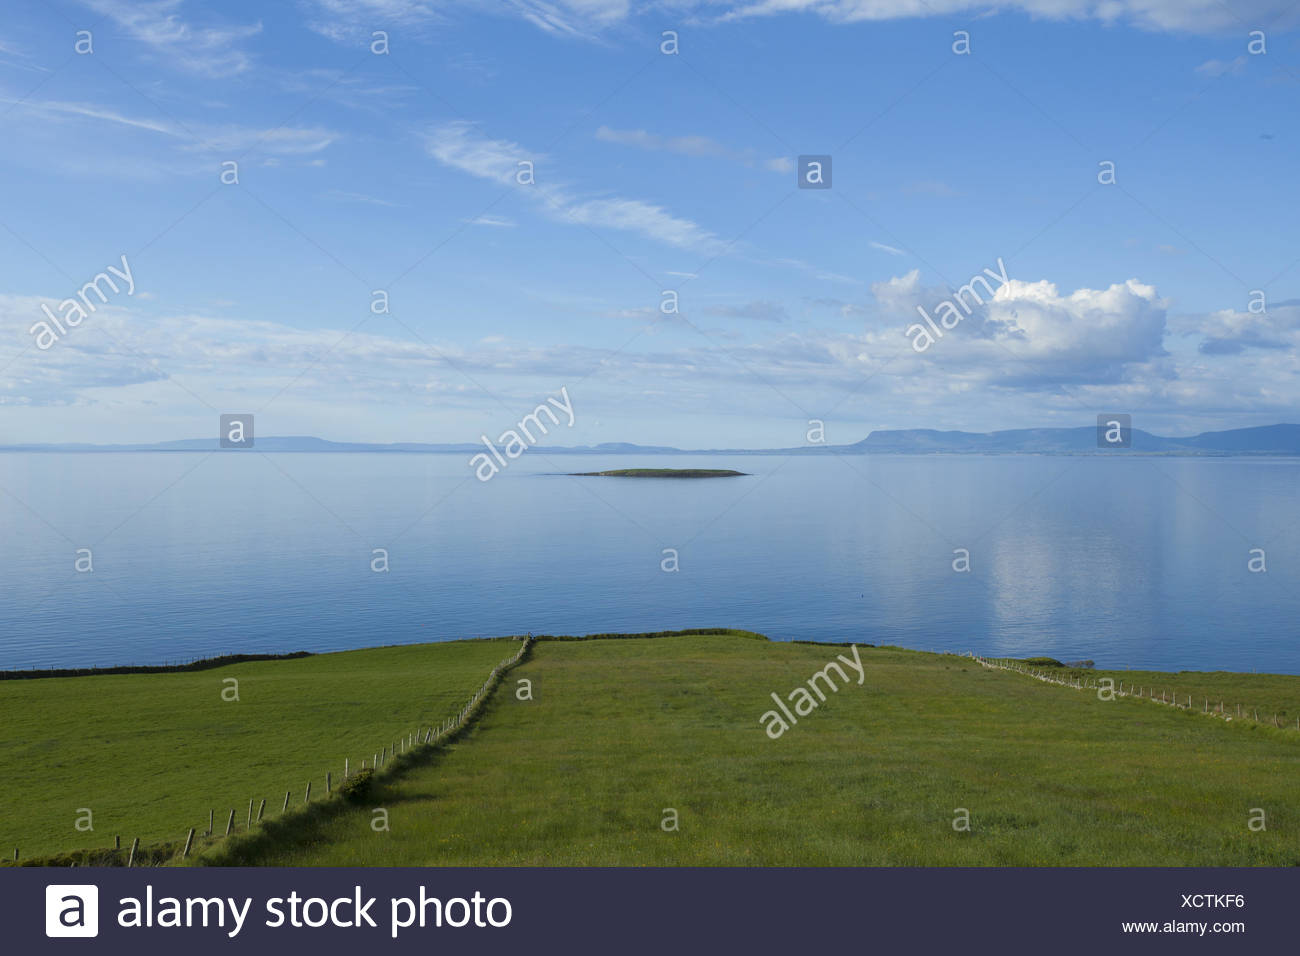 Irish summer scenery - Stock Image